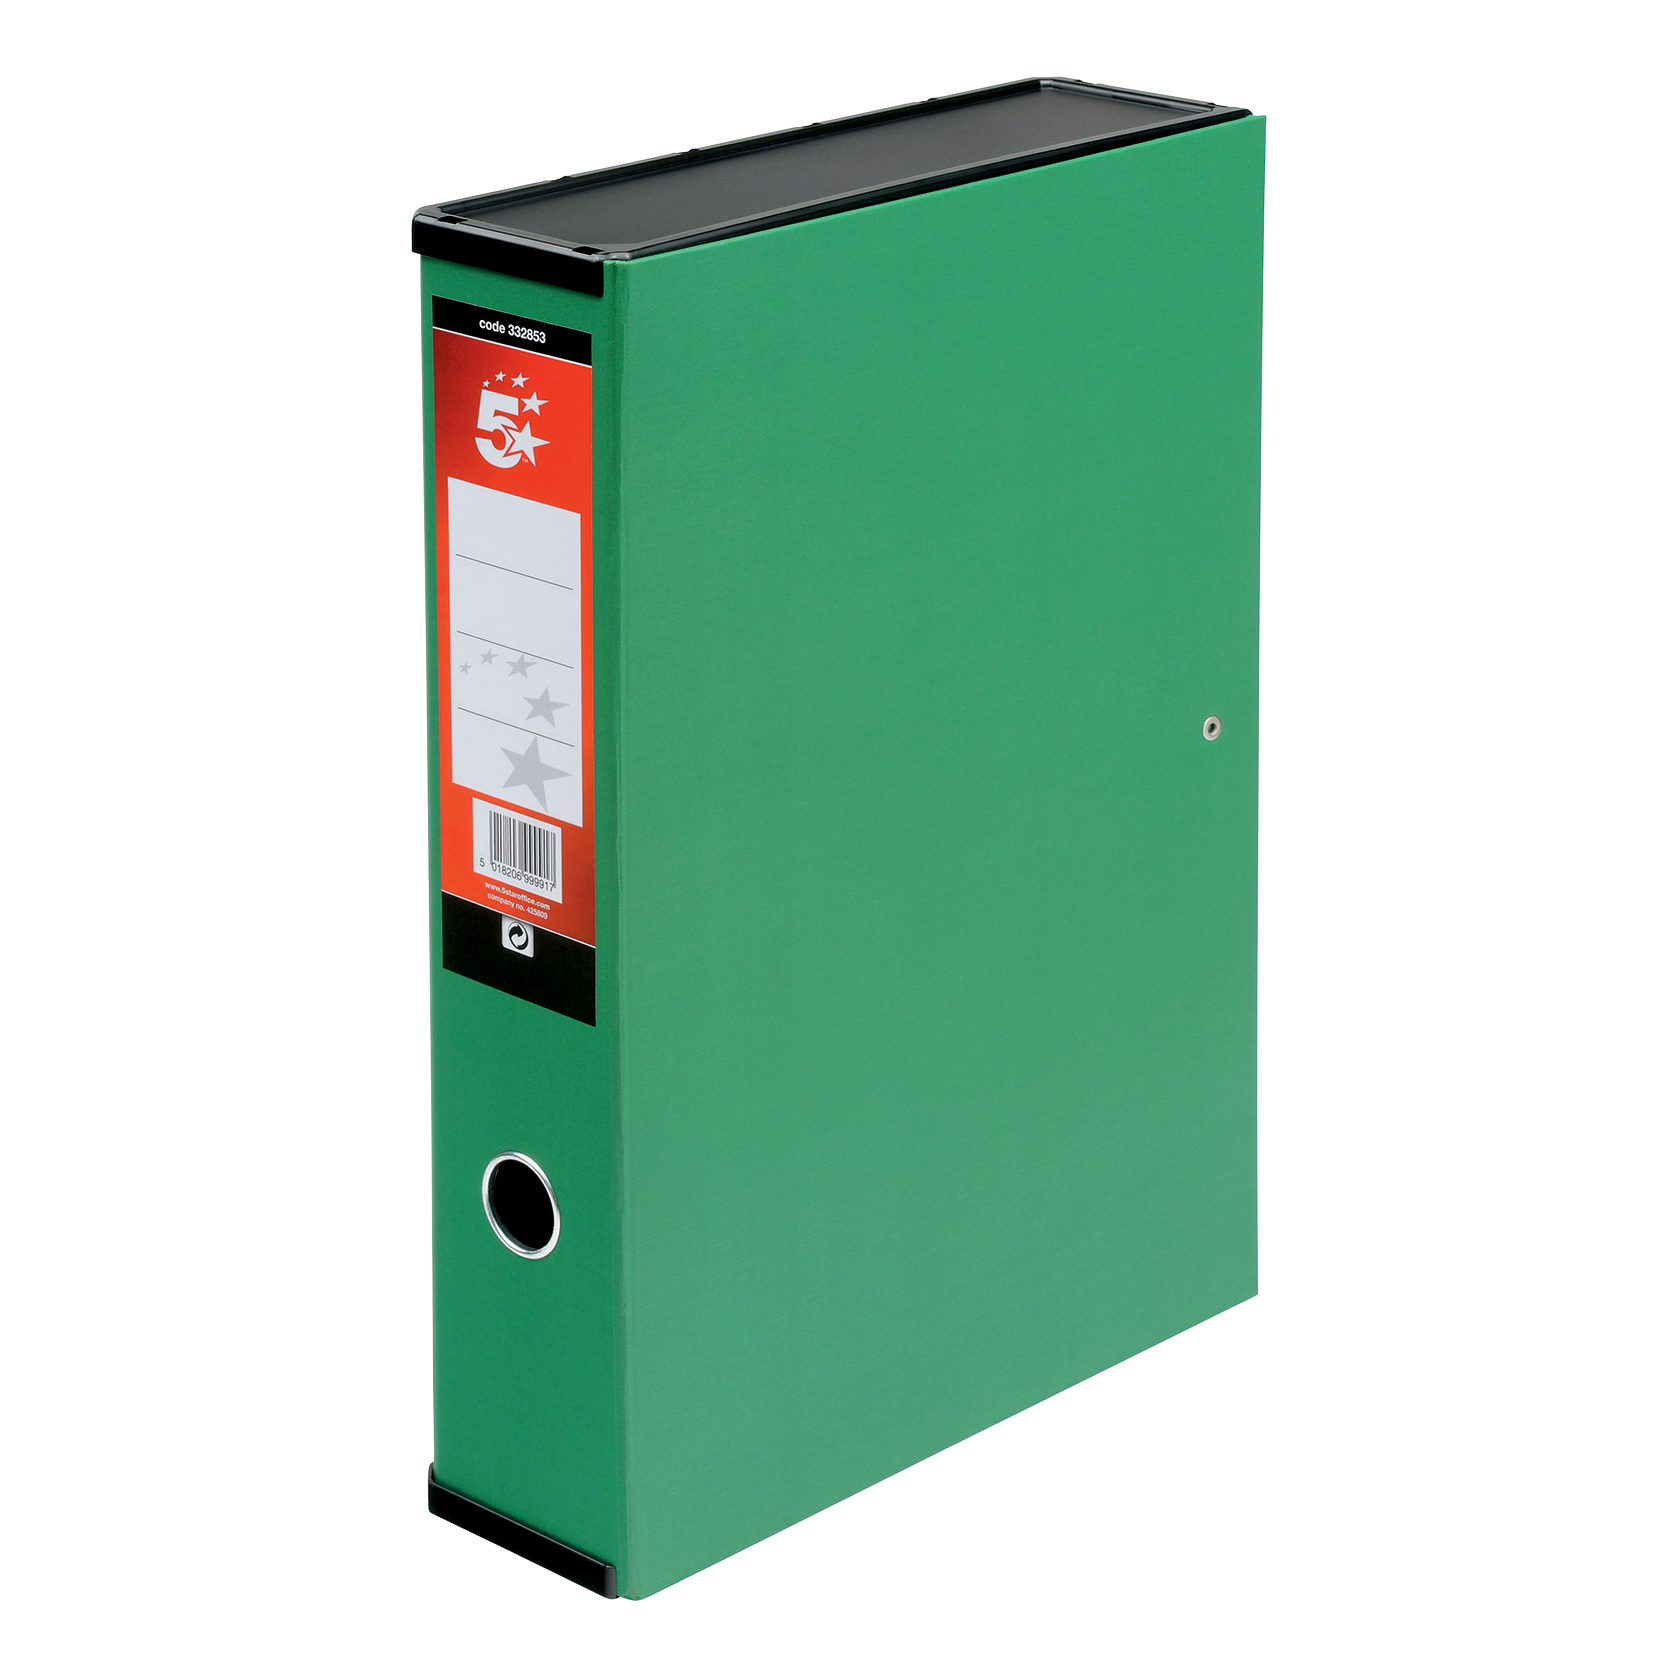 Image for 5 Star Office Box File Lock Spring with Push Button Closure 70mm Capacity Foolscap Green [Pack 5]